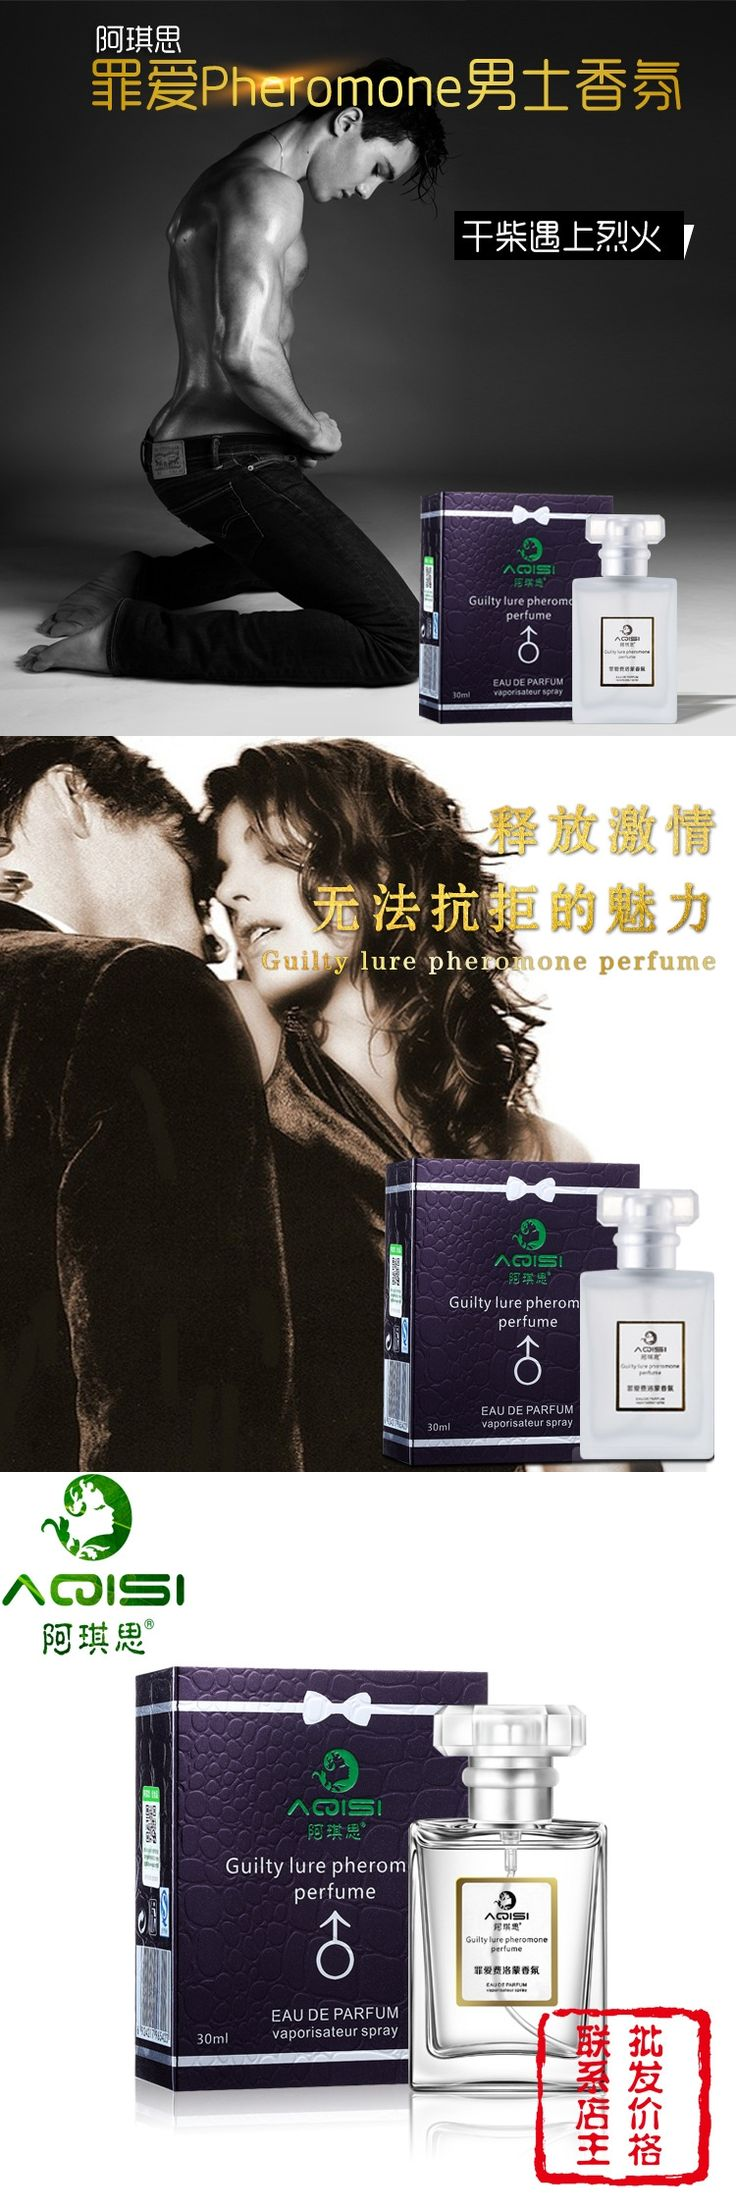 Natural Spray Vaporisateur, flirt perfume For male Use,Sex Product,increasing sexual pleasure Adult Product 30Ml